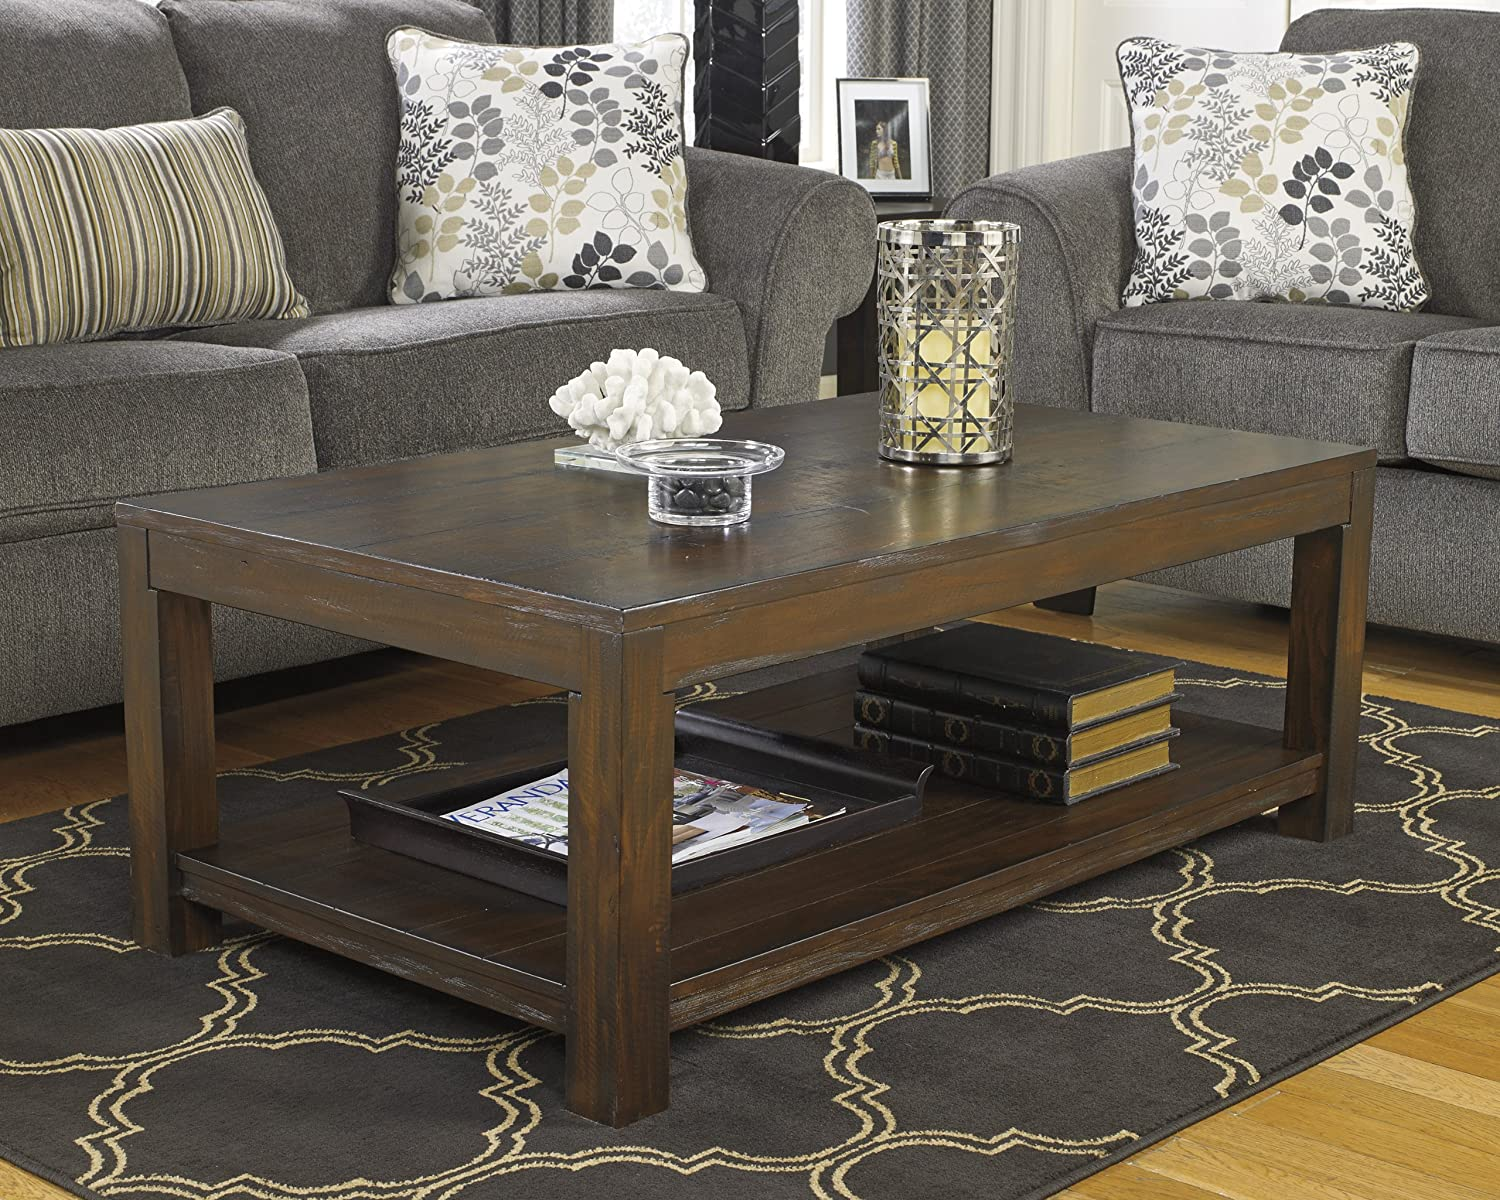 Amazon.com: Ashley Furniture Signature Design - Grinlyn Coffee Table ...